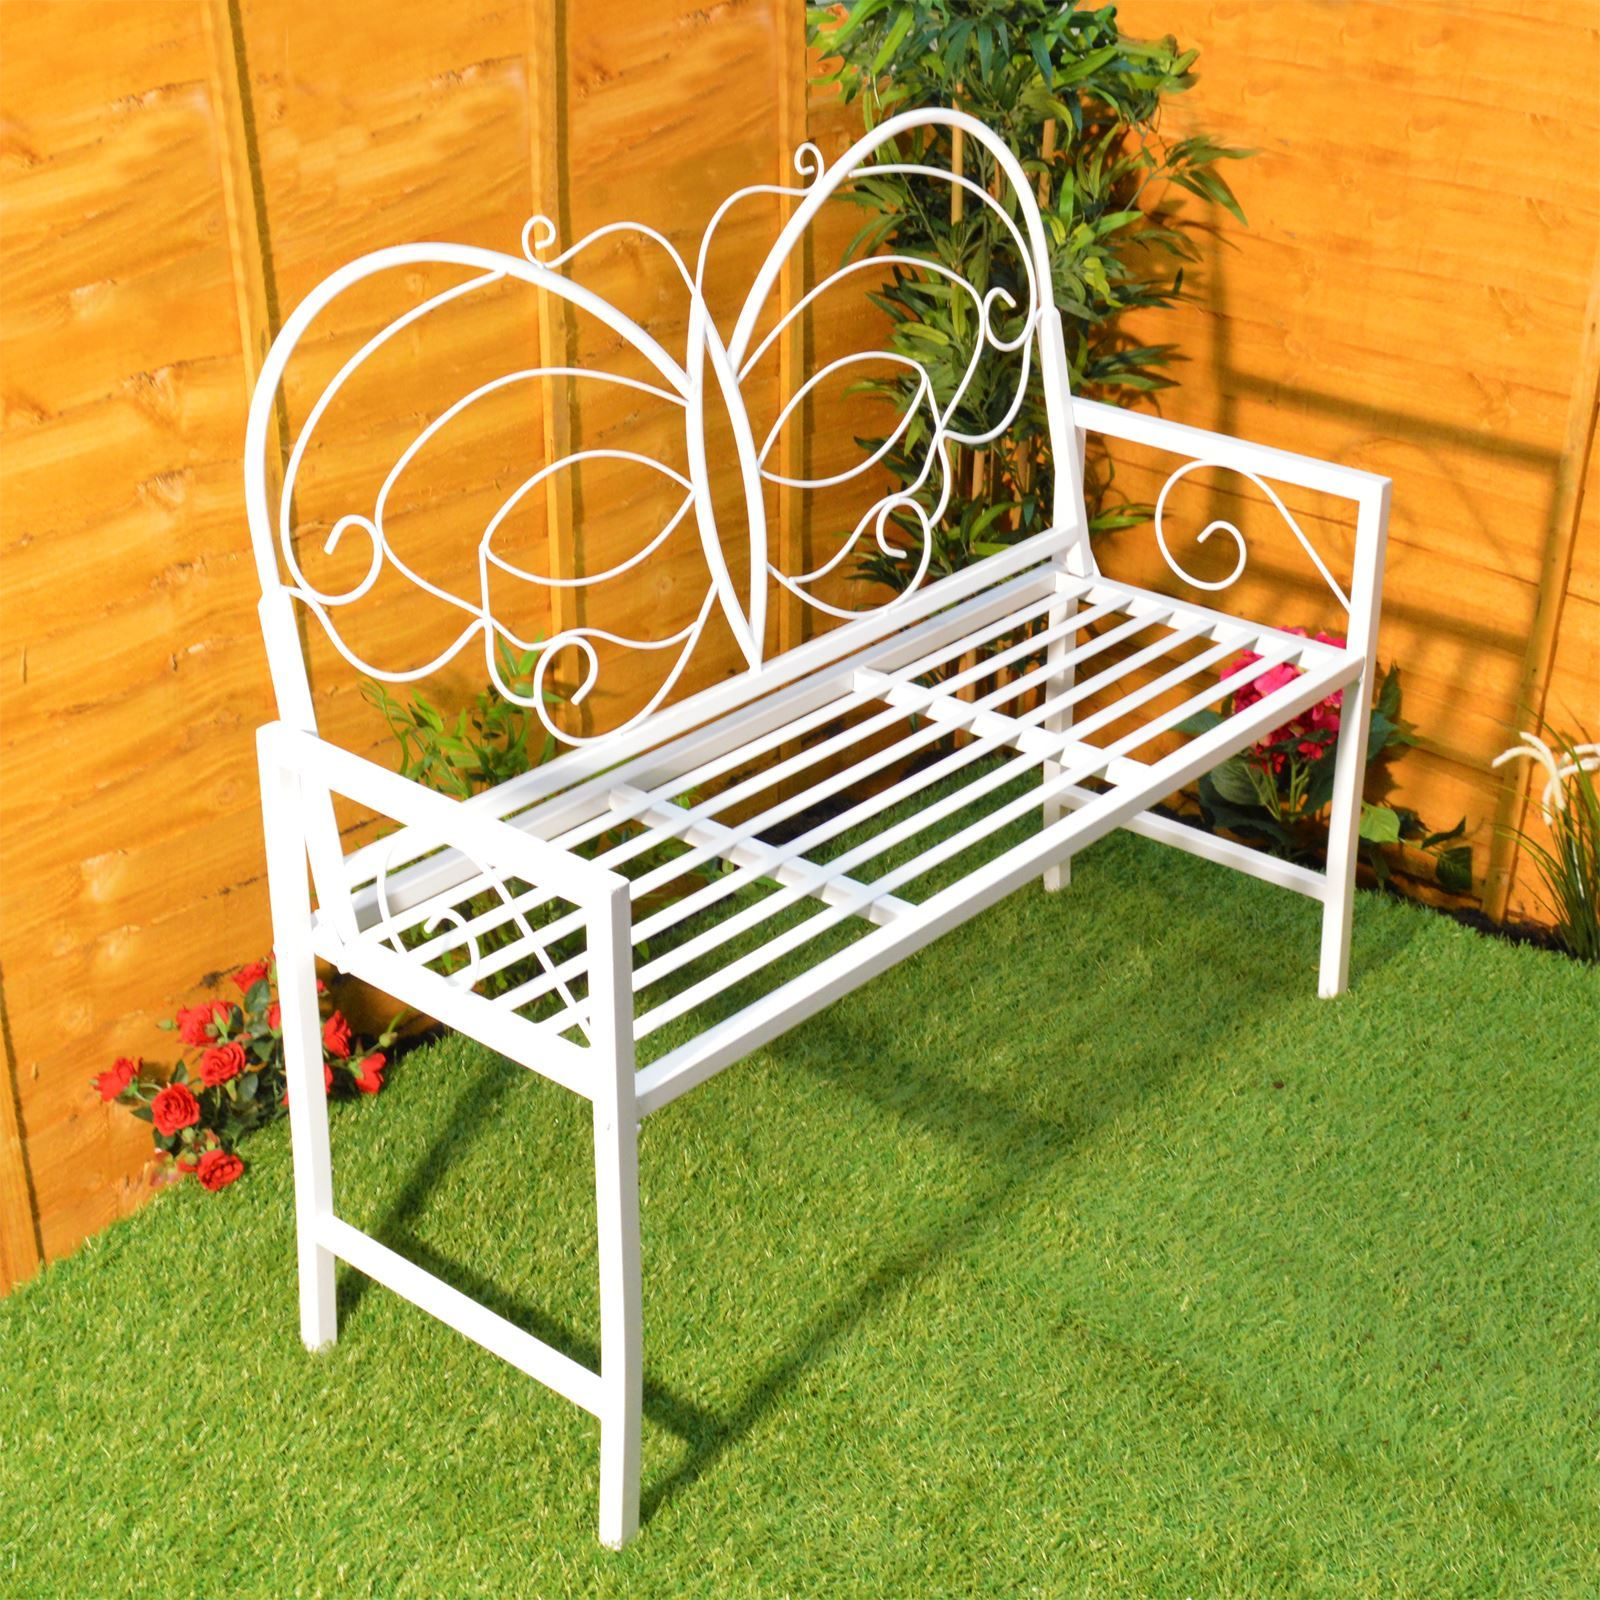 Butterfly Garden Bench Metal Patio Furniture Seat Outdoor Decorative ...